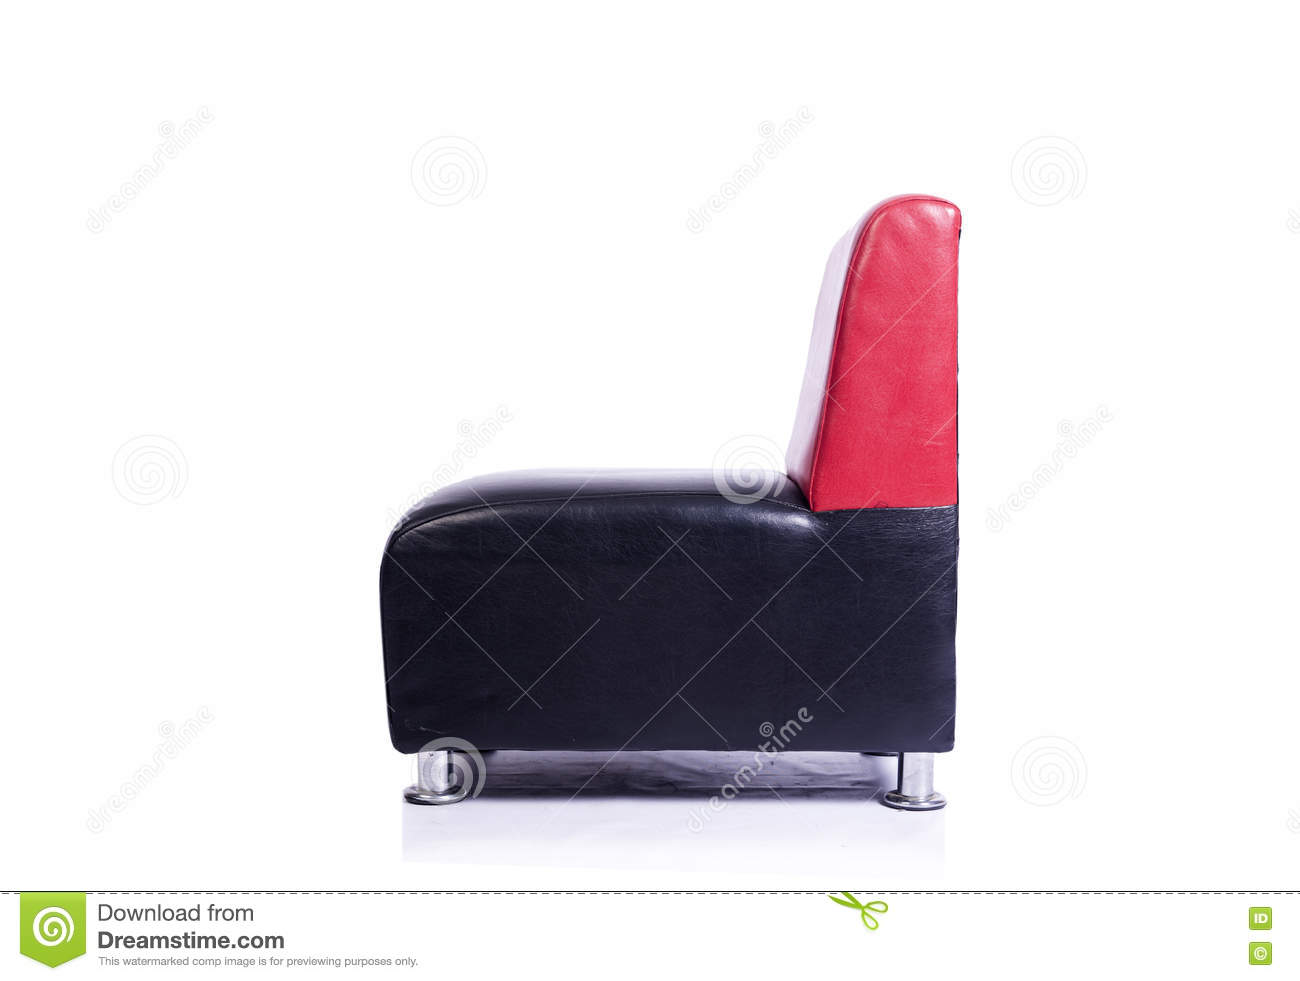 Red And Black Leather Stool Stock Image CartoonDealer  : leather arm chair isolated white background 73712121 from cartoondealer.com size 1300 x 981 jpeg 54kB